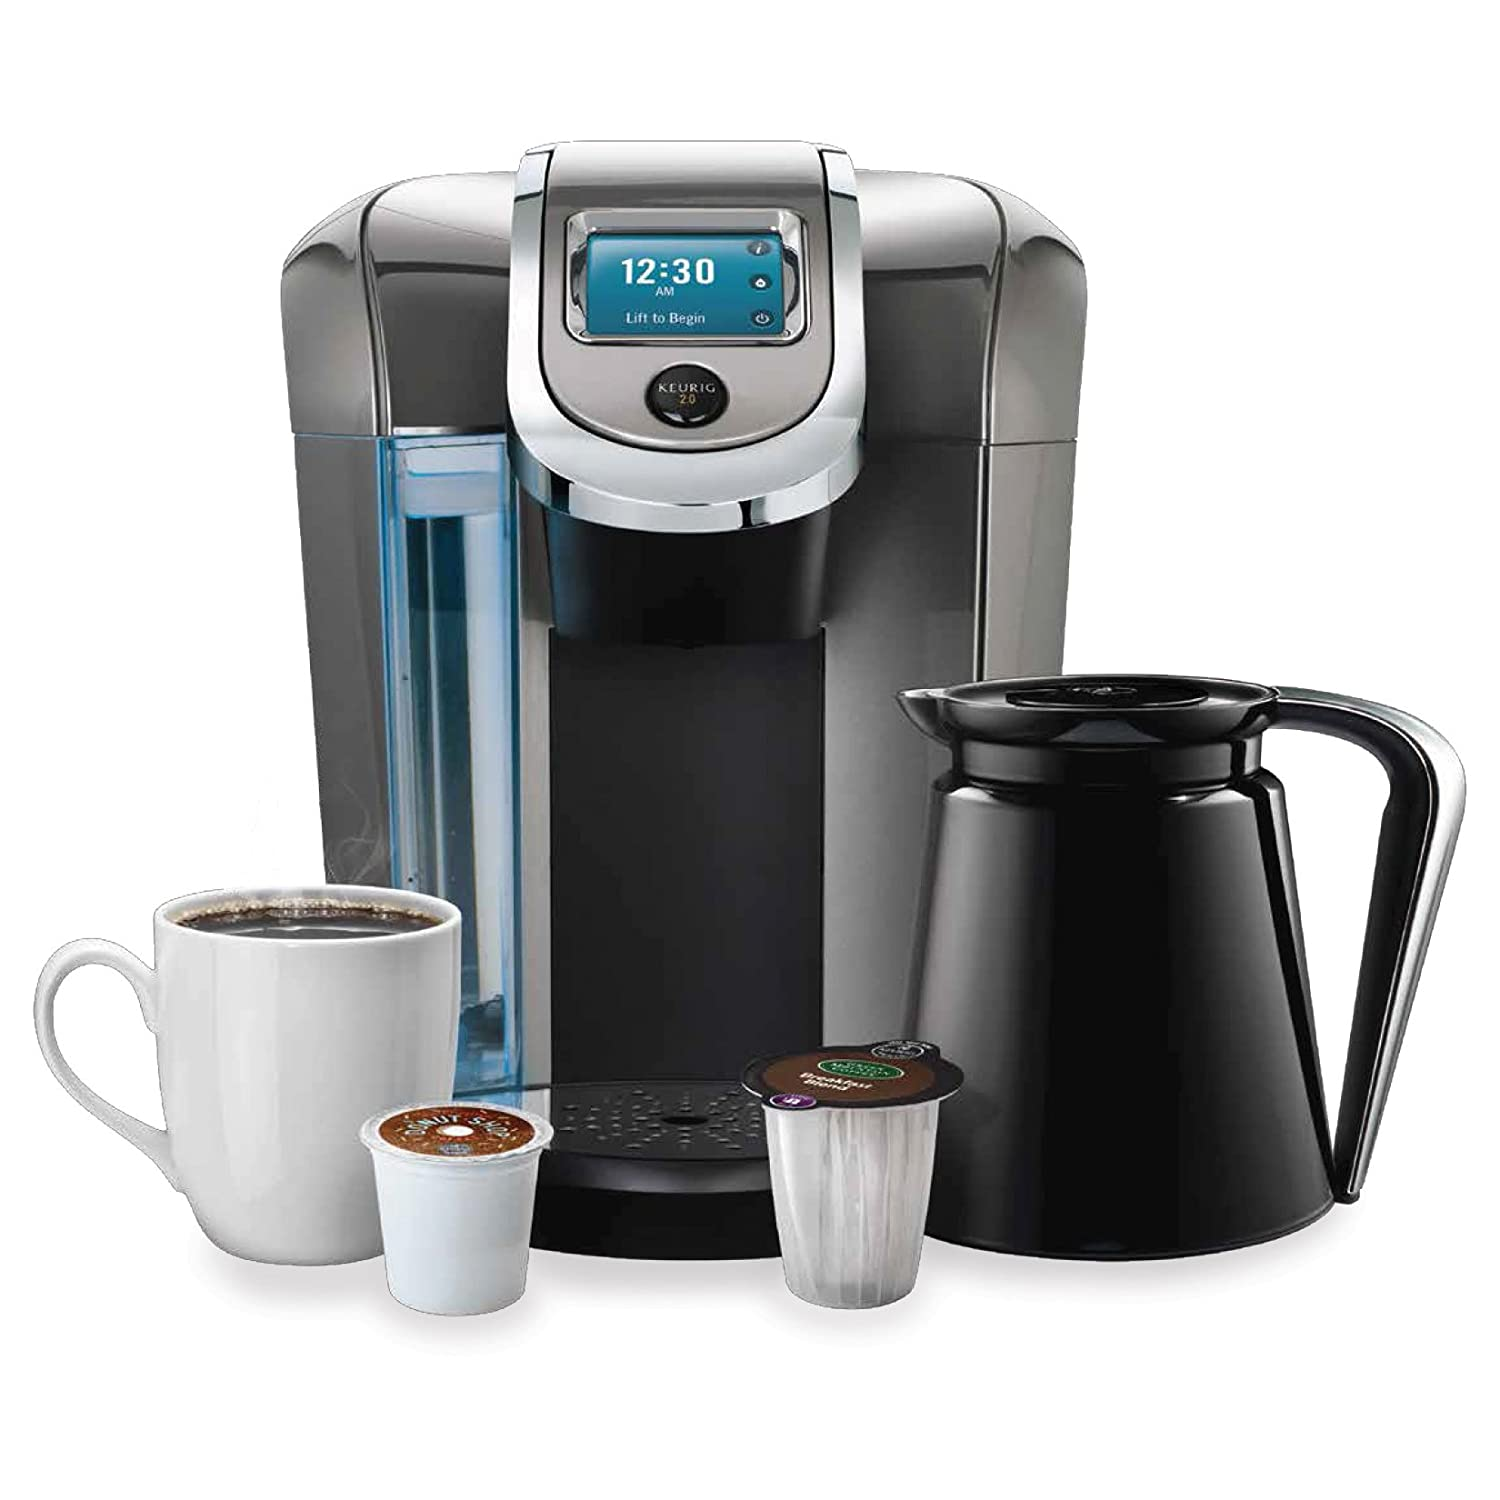 Keurig 2.0 Brewer Review